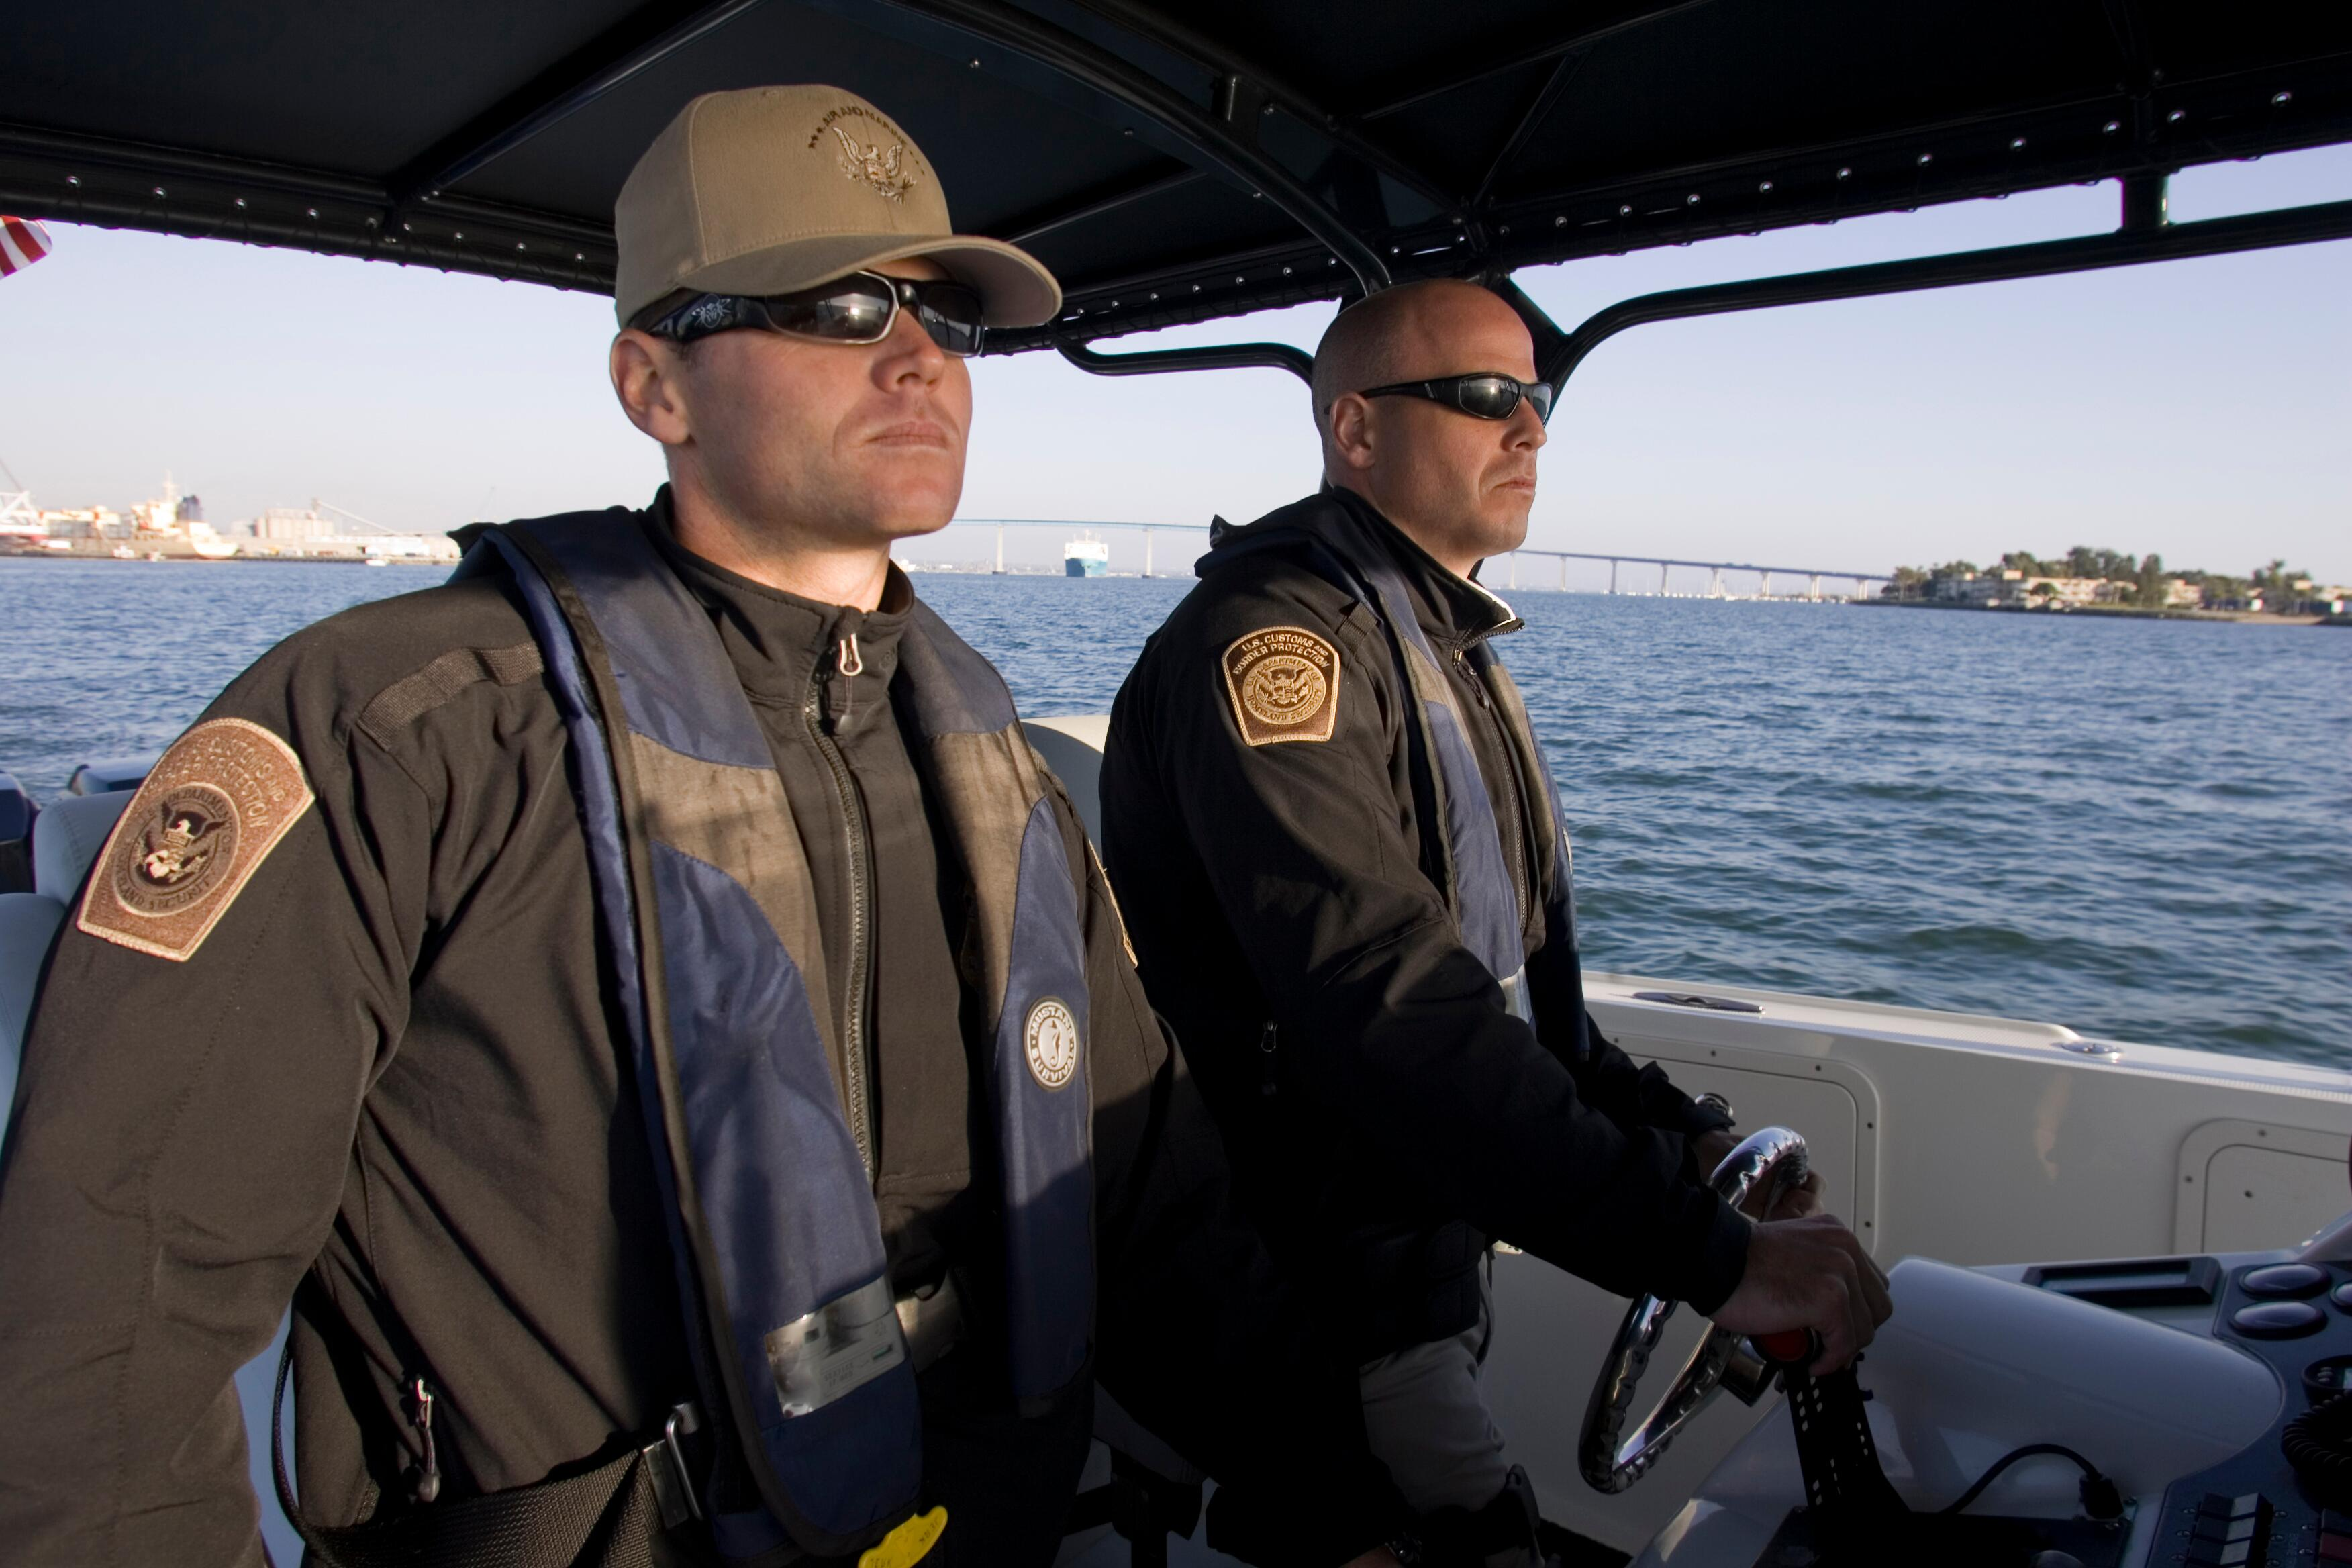 CBP marine interdiction agent patrol the waters off San Diego.